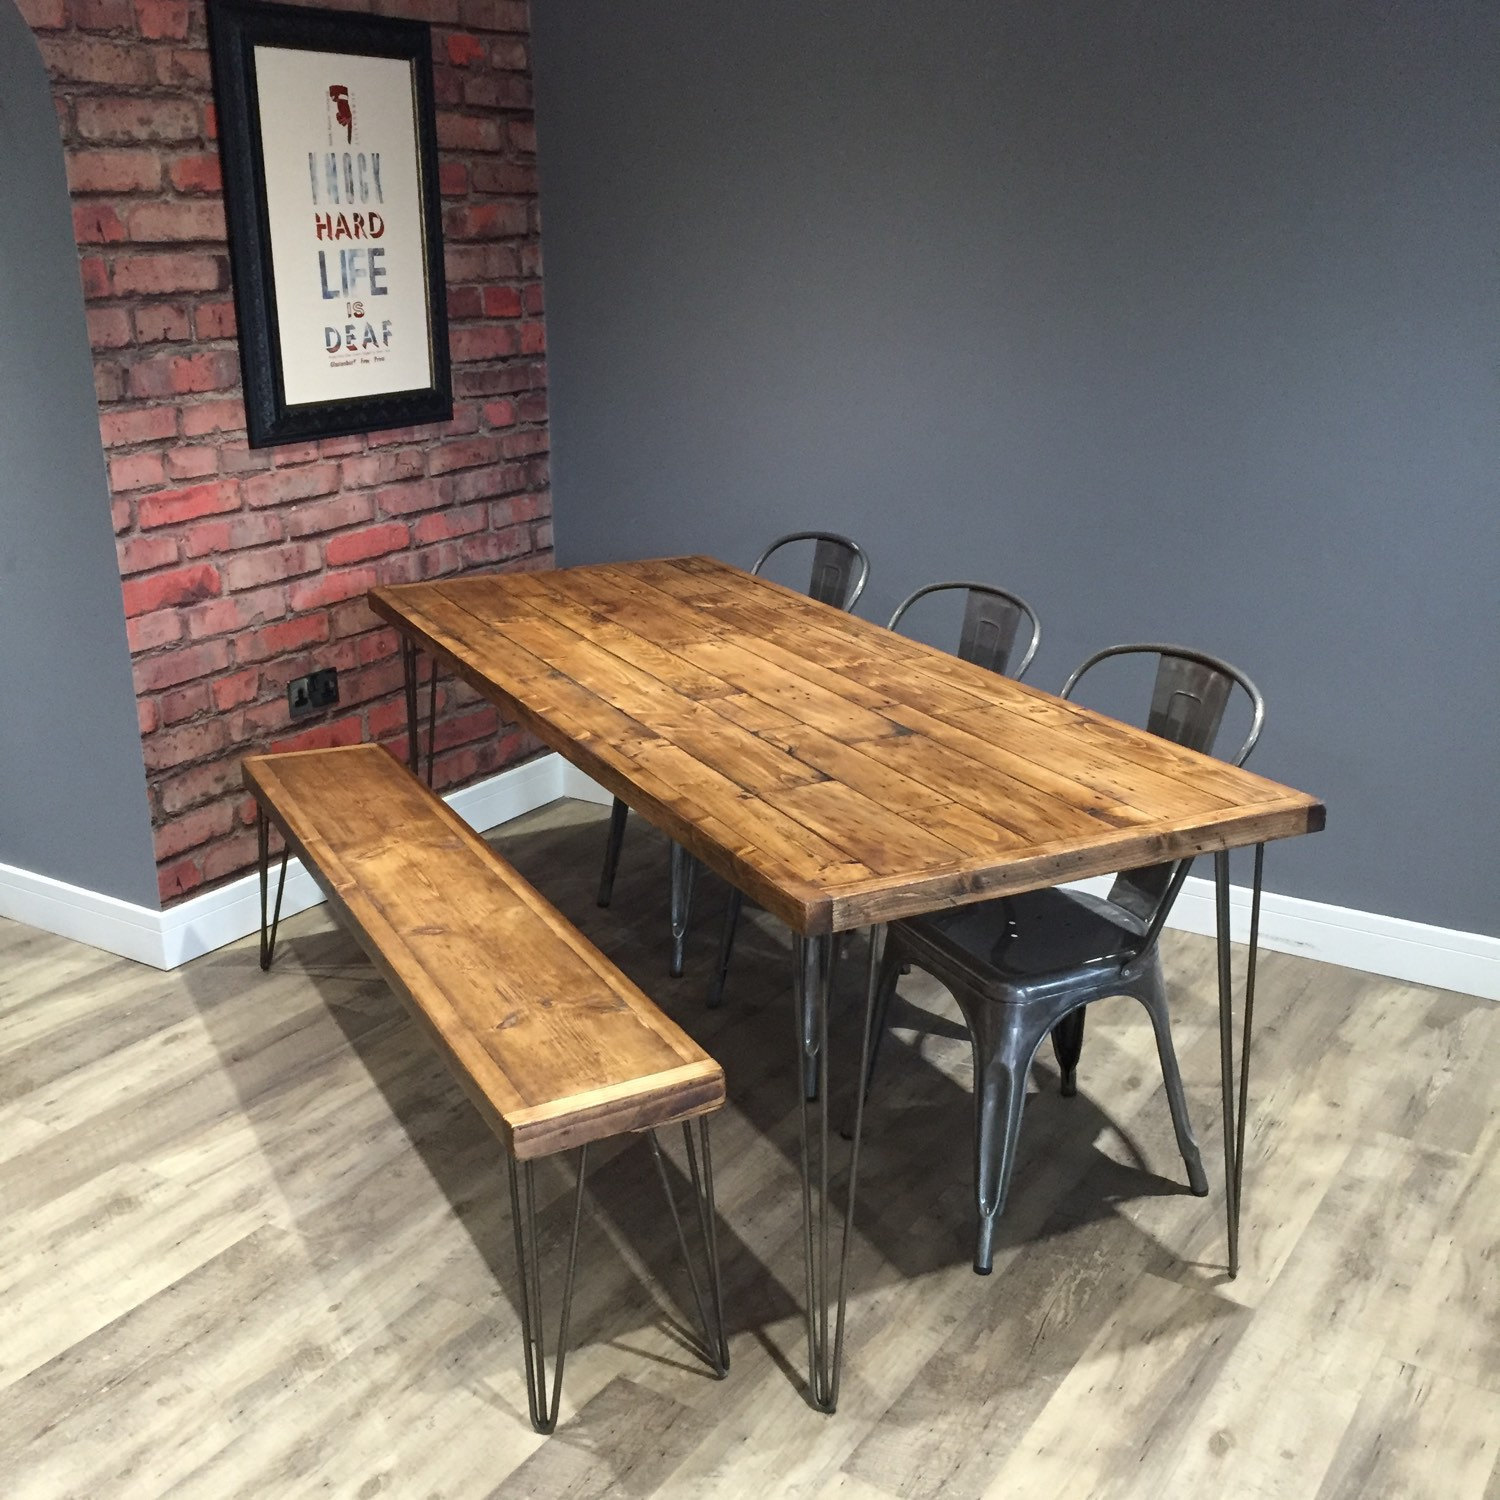 Remarkable Reclaimed Industrial Pallet Wood Dining Table 200Cm 1 Matching Bench With Metal Hairpin Legs Pabps2019 Chair Design Images Pabps2019Com